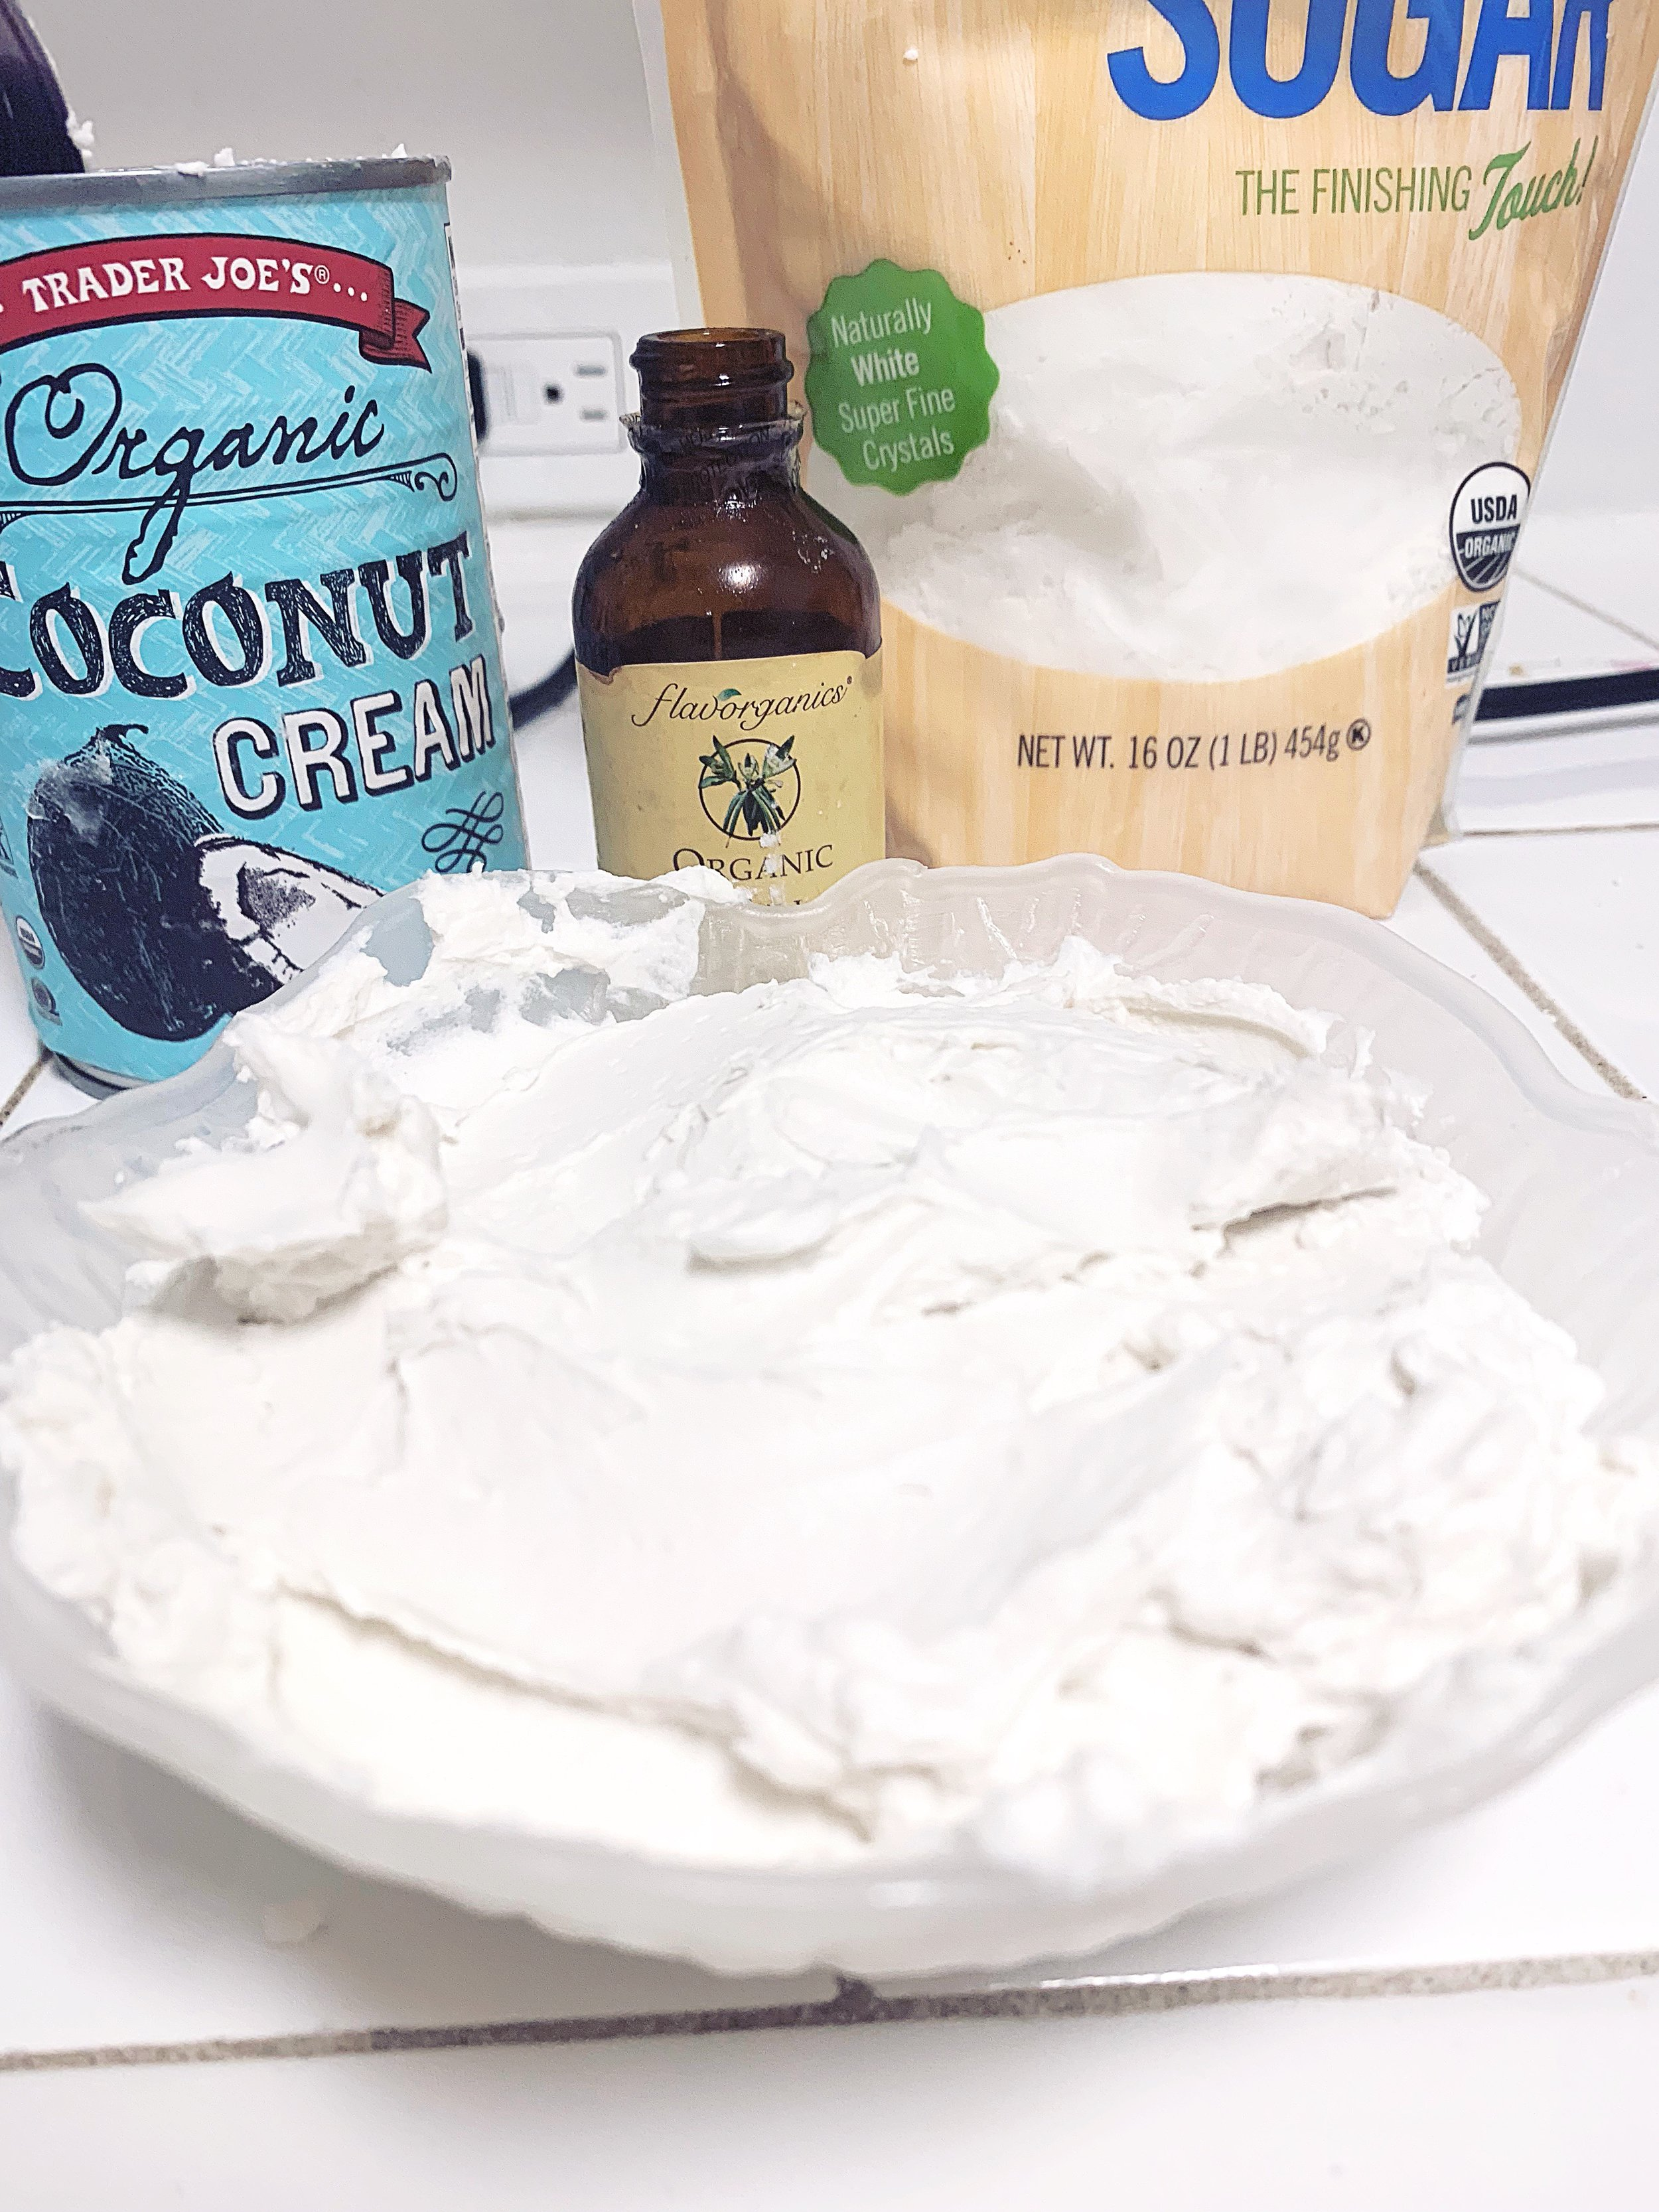 Whipped cream with all of the ingredients